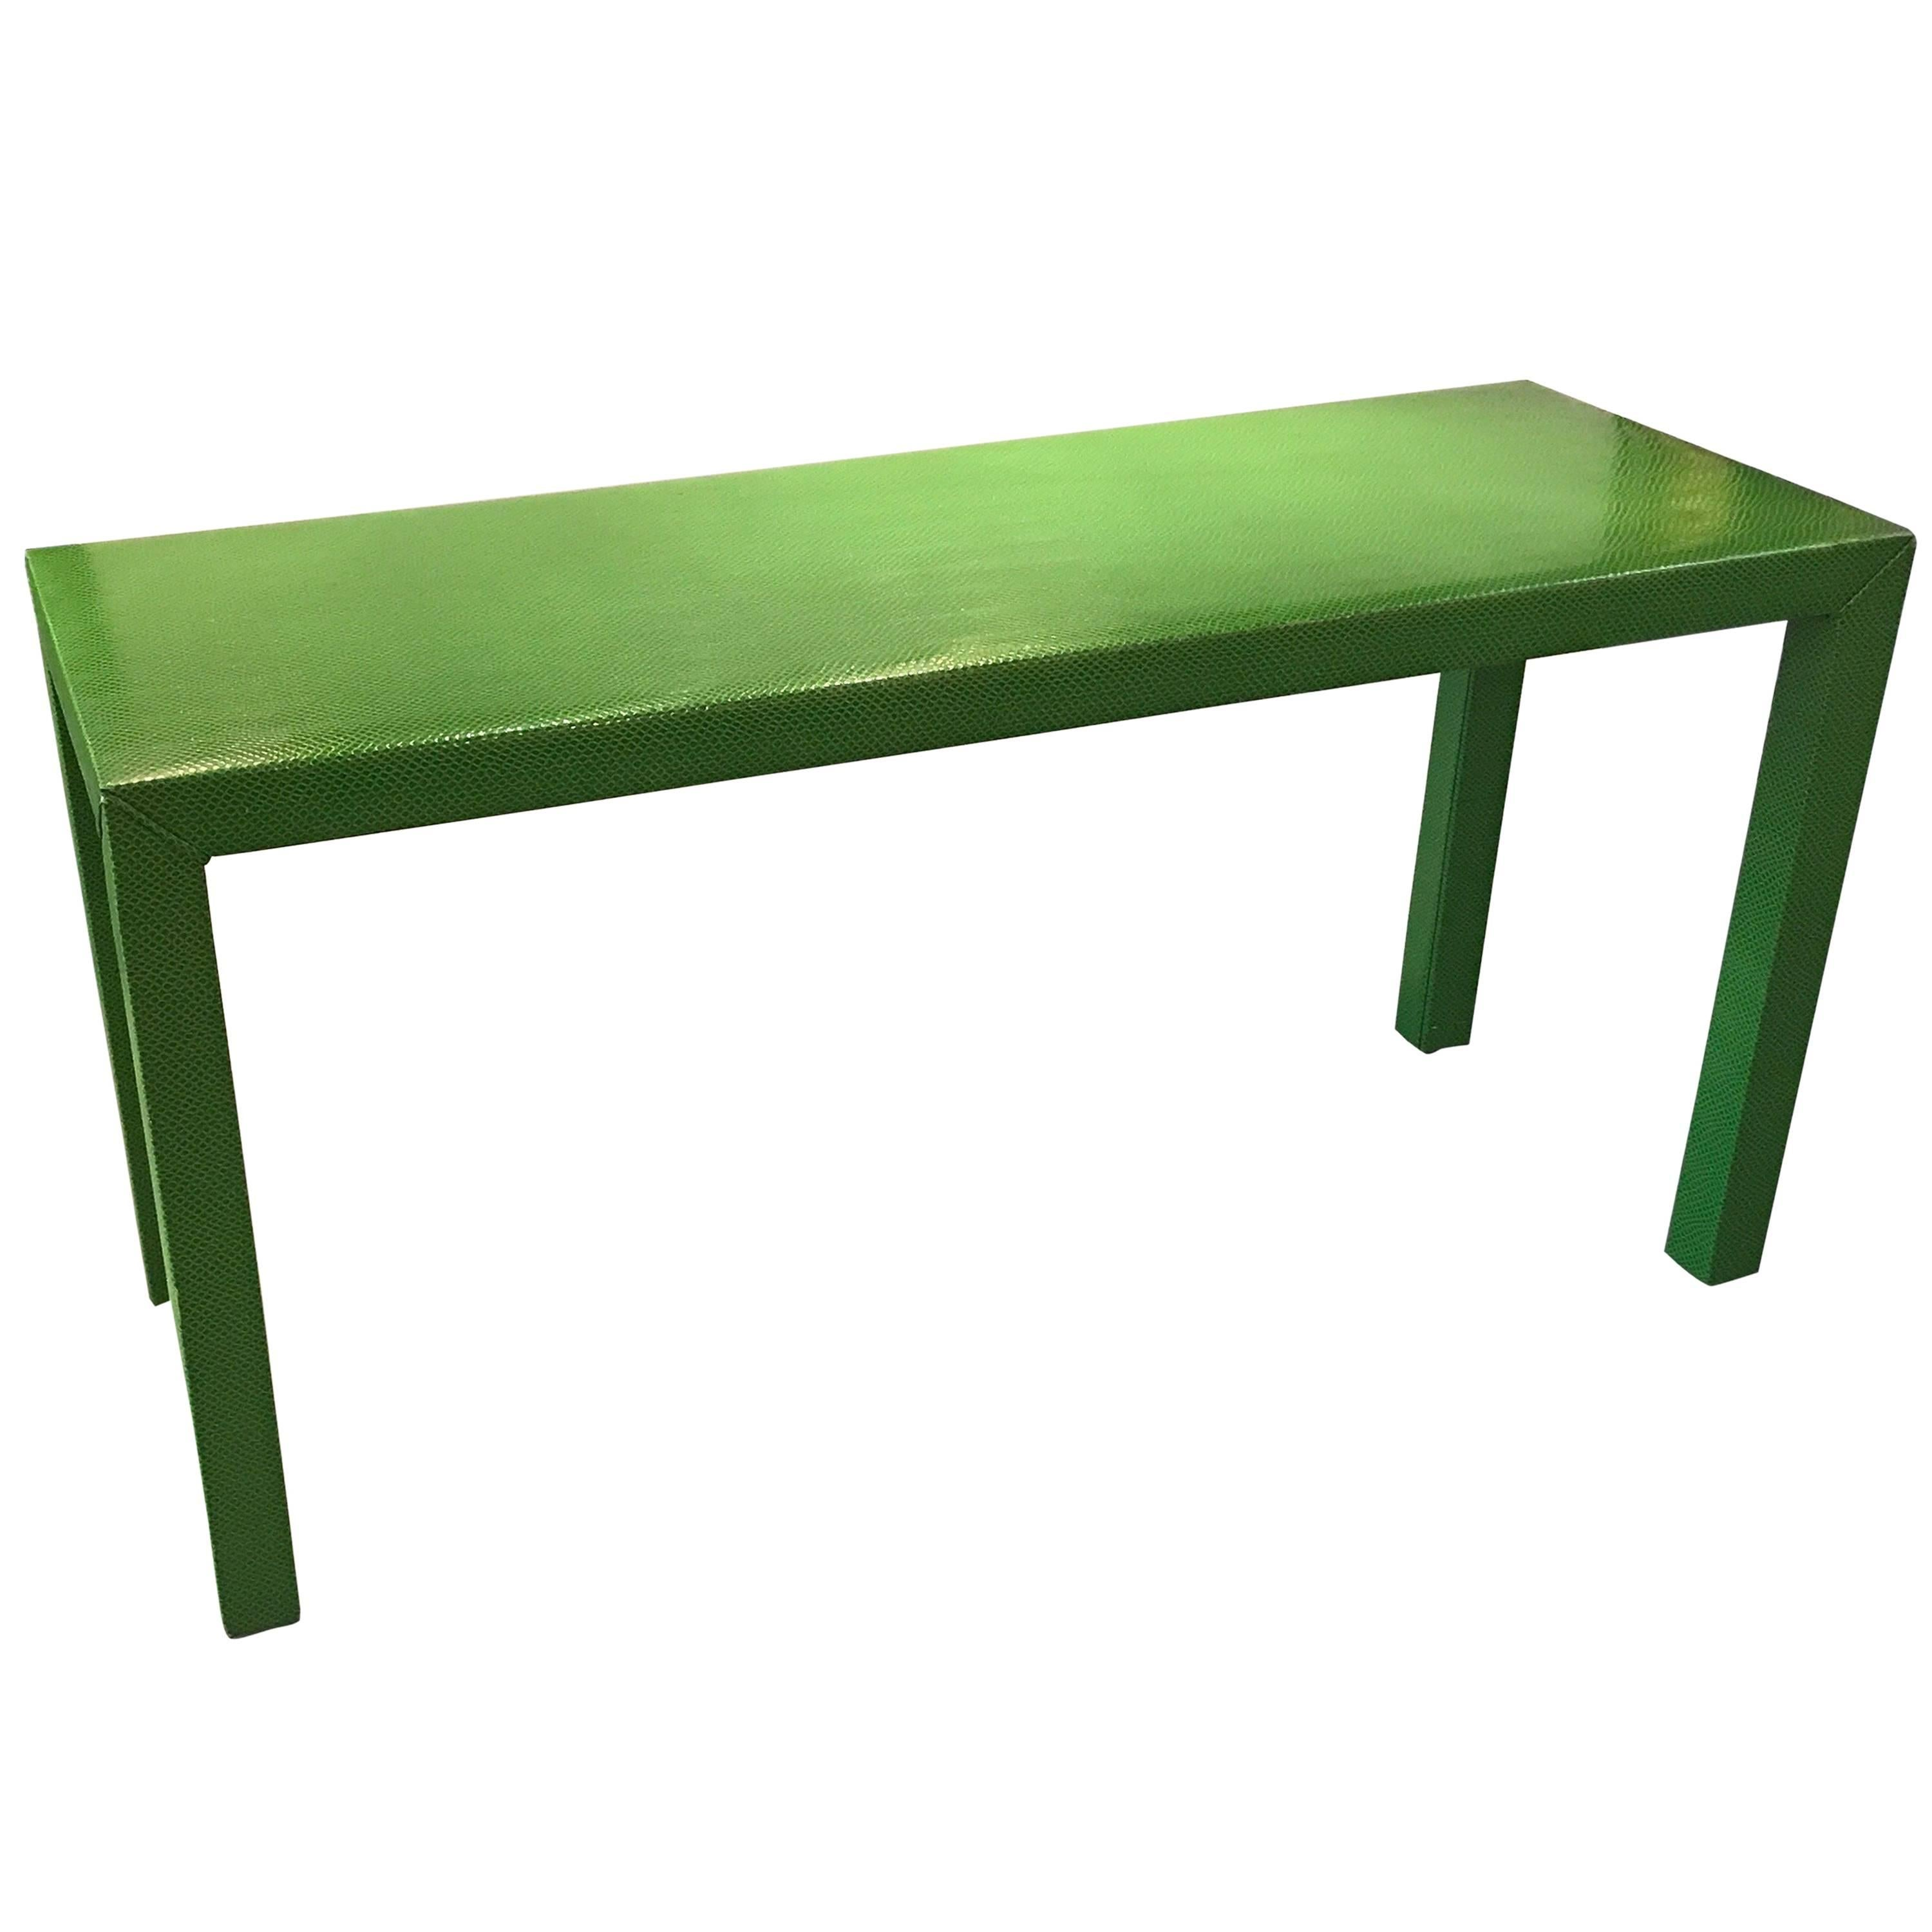 Attractive Faux Snakeskin Lime Green Console Table For Sale